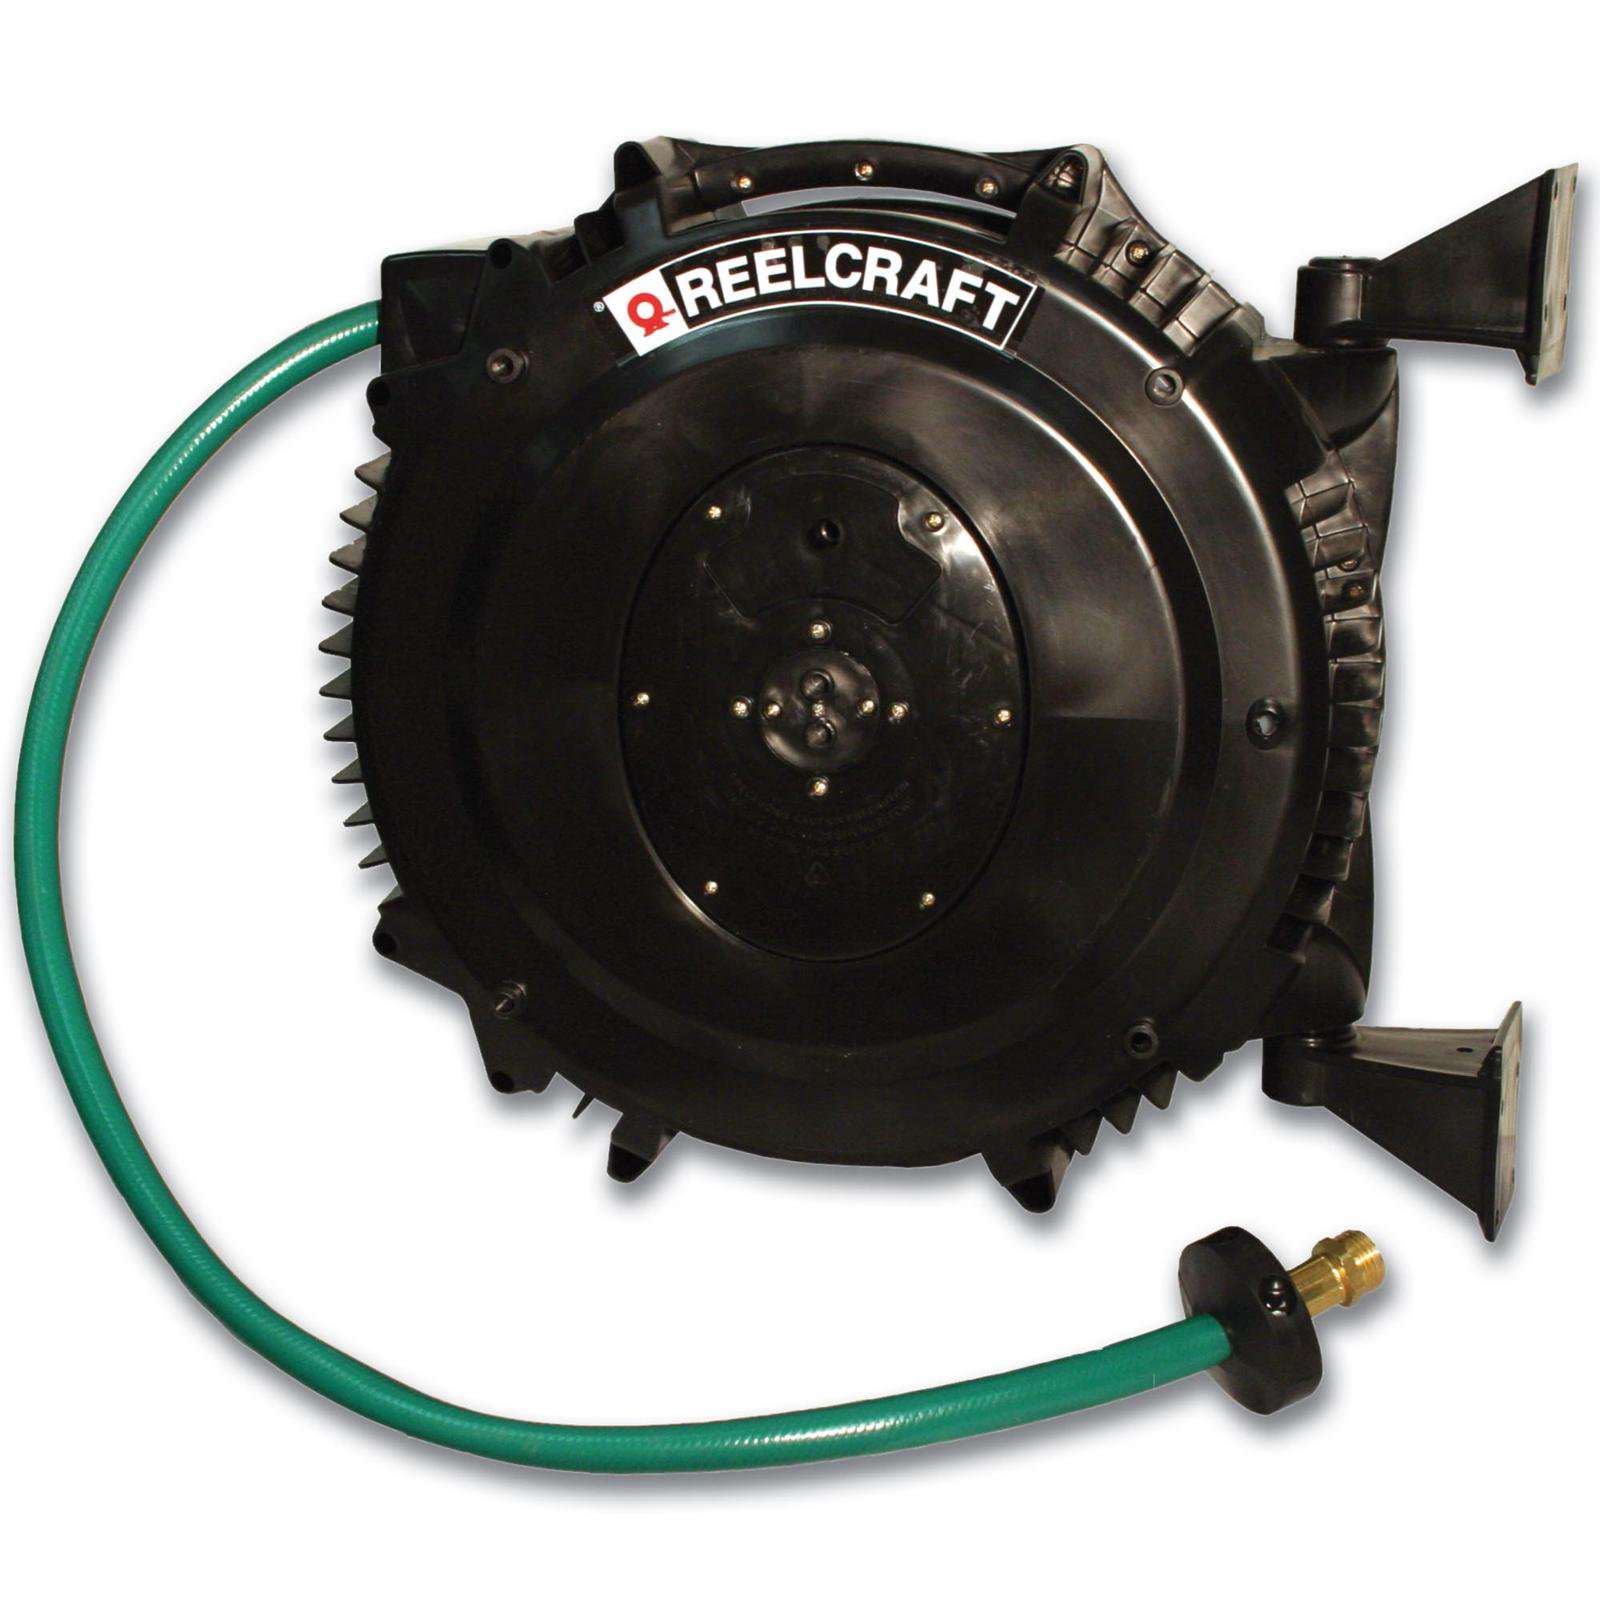 ReelCraft Contractor Grade Water Hose Reel with PVC Hose by Hose Reels